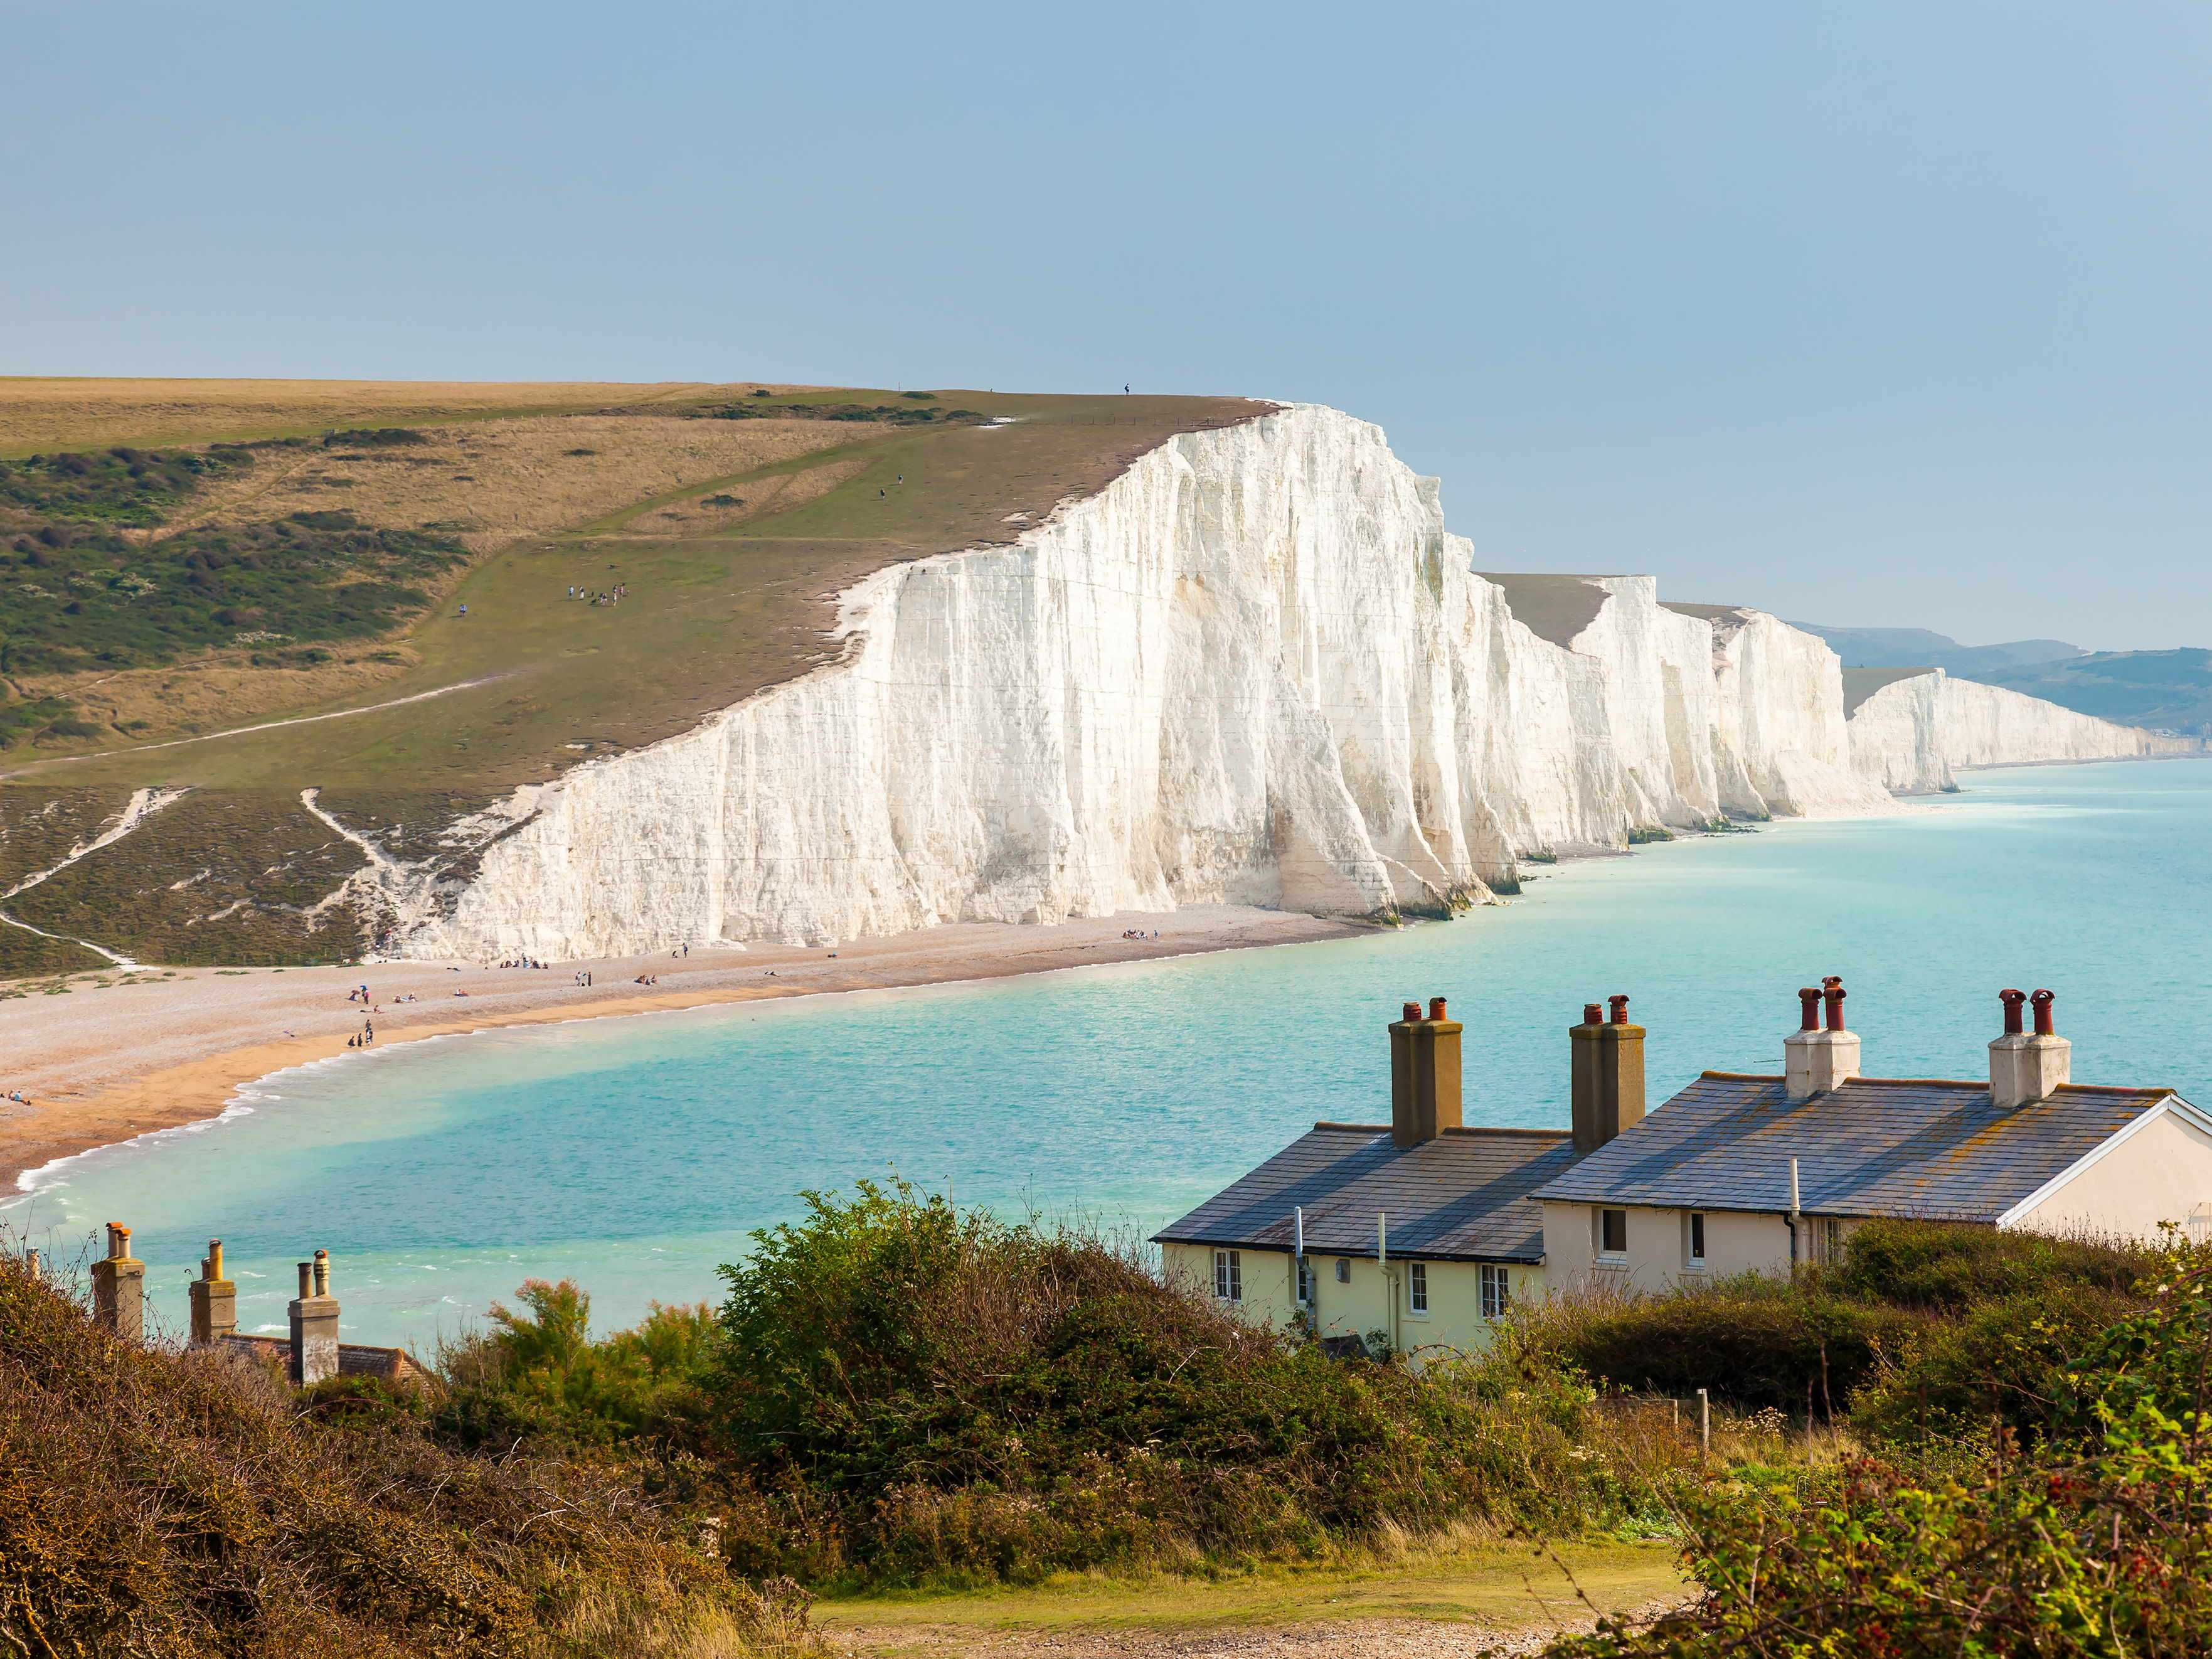 Staycation ideas: The best national parks and caravan parks for your next trip away